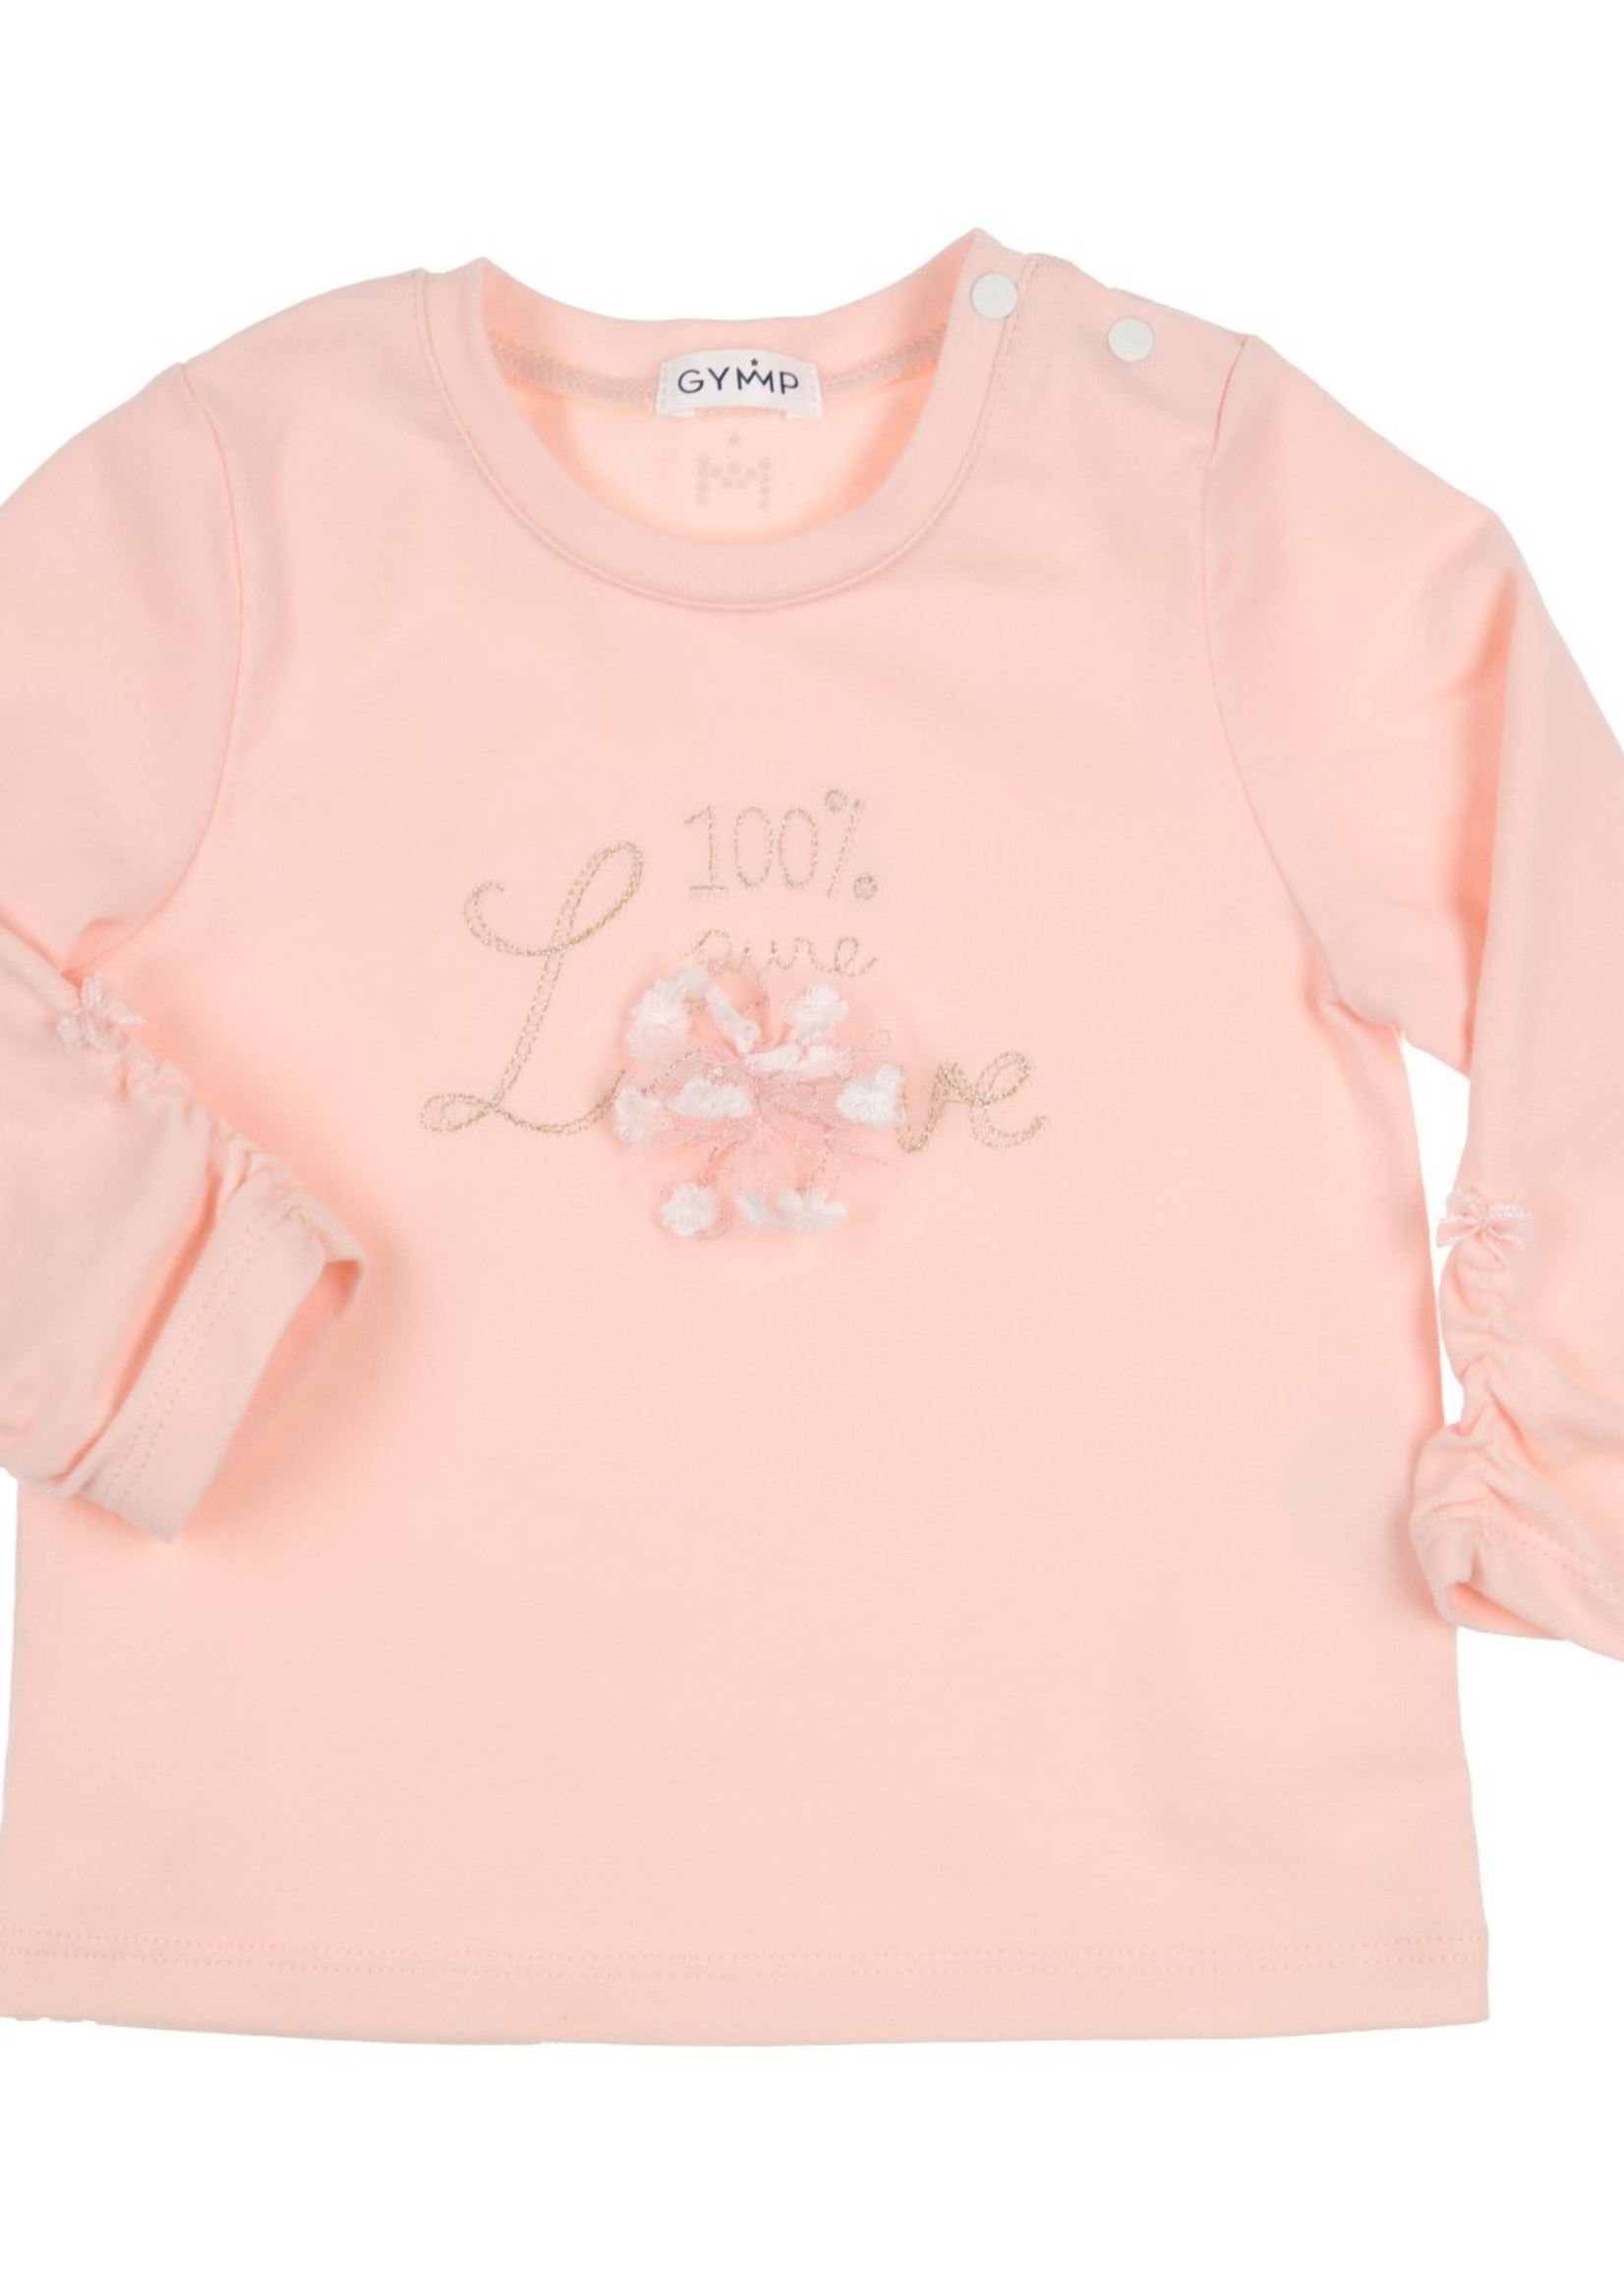 Gymp Gymp longsleeve 100% pure LOVE vieux rose